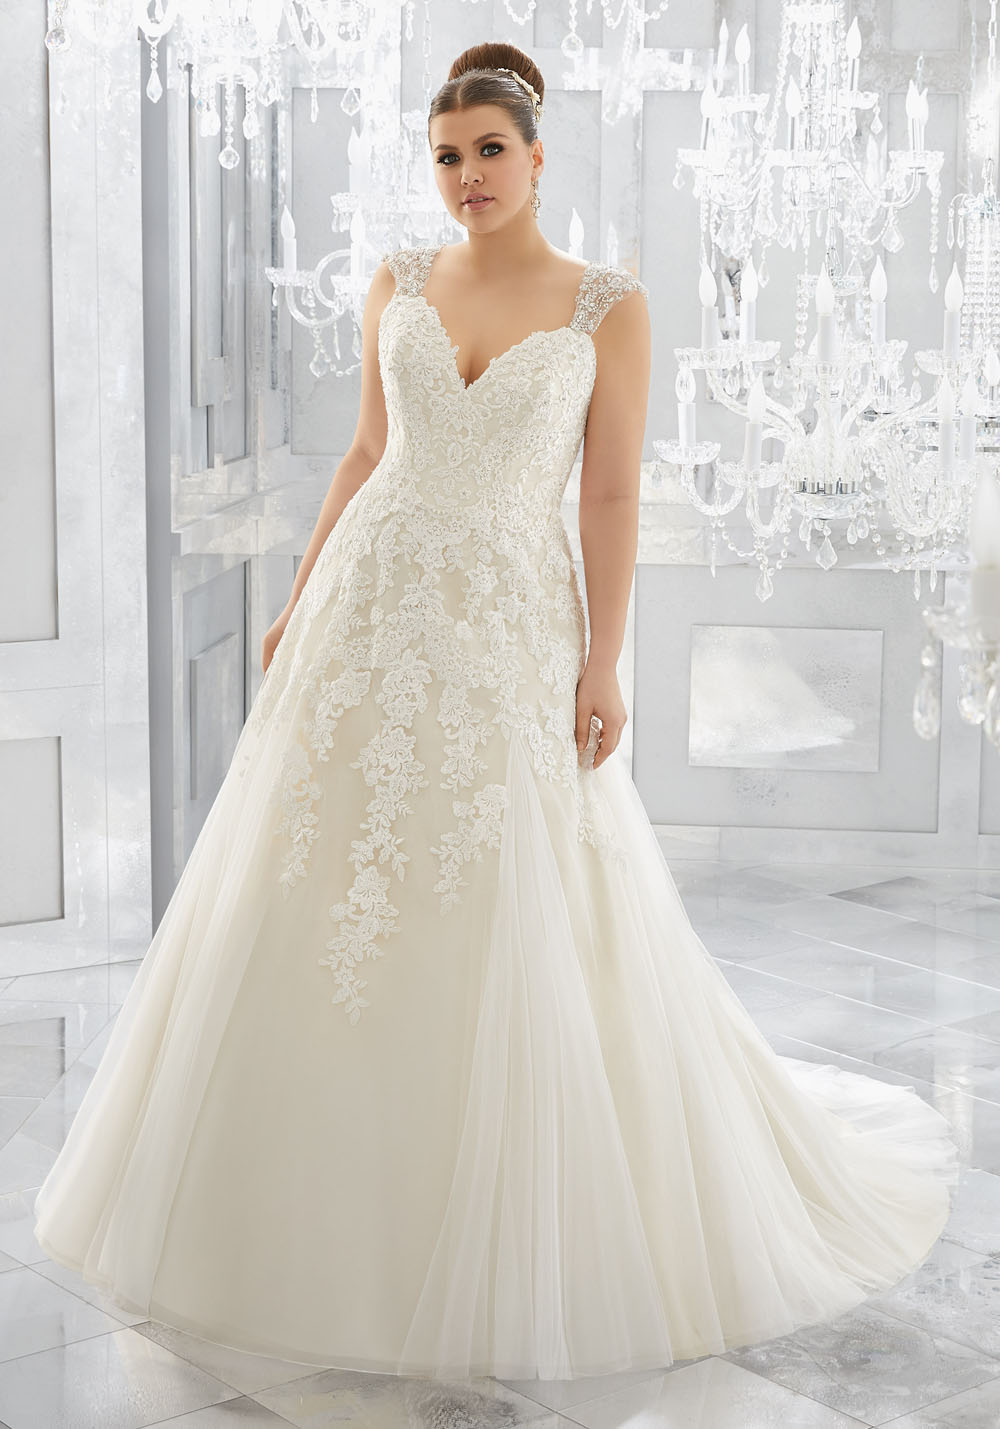 8 Wedding Dresses For Beautiful Curvy Brides Shop For